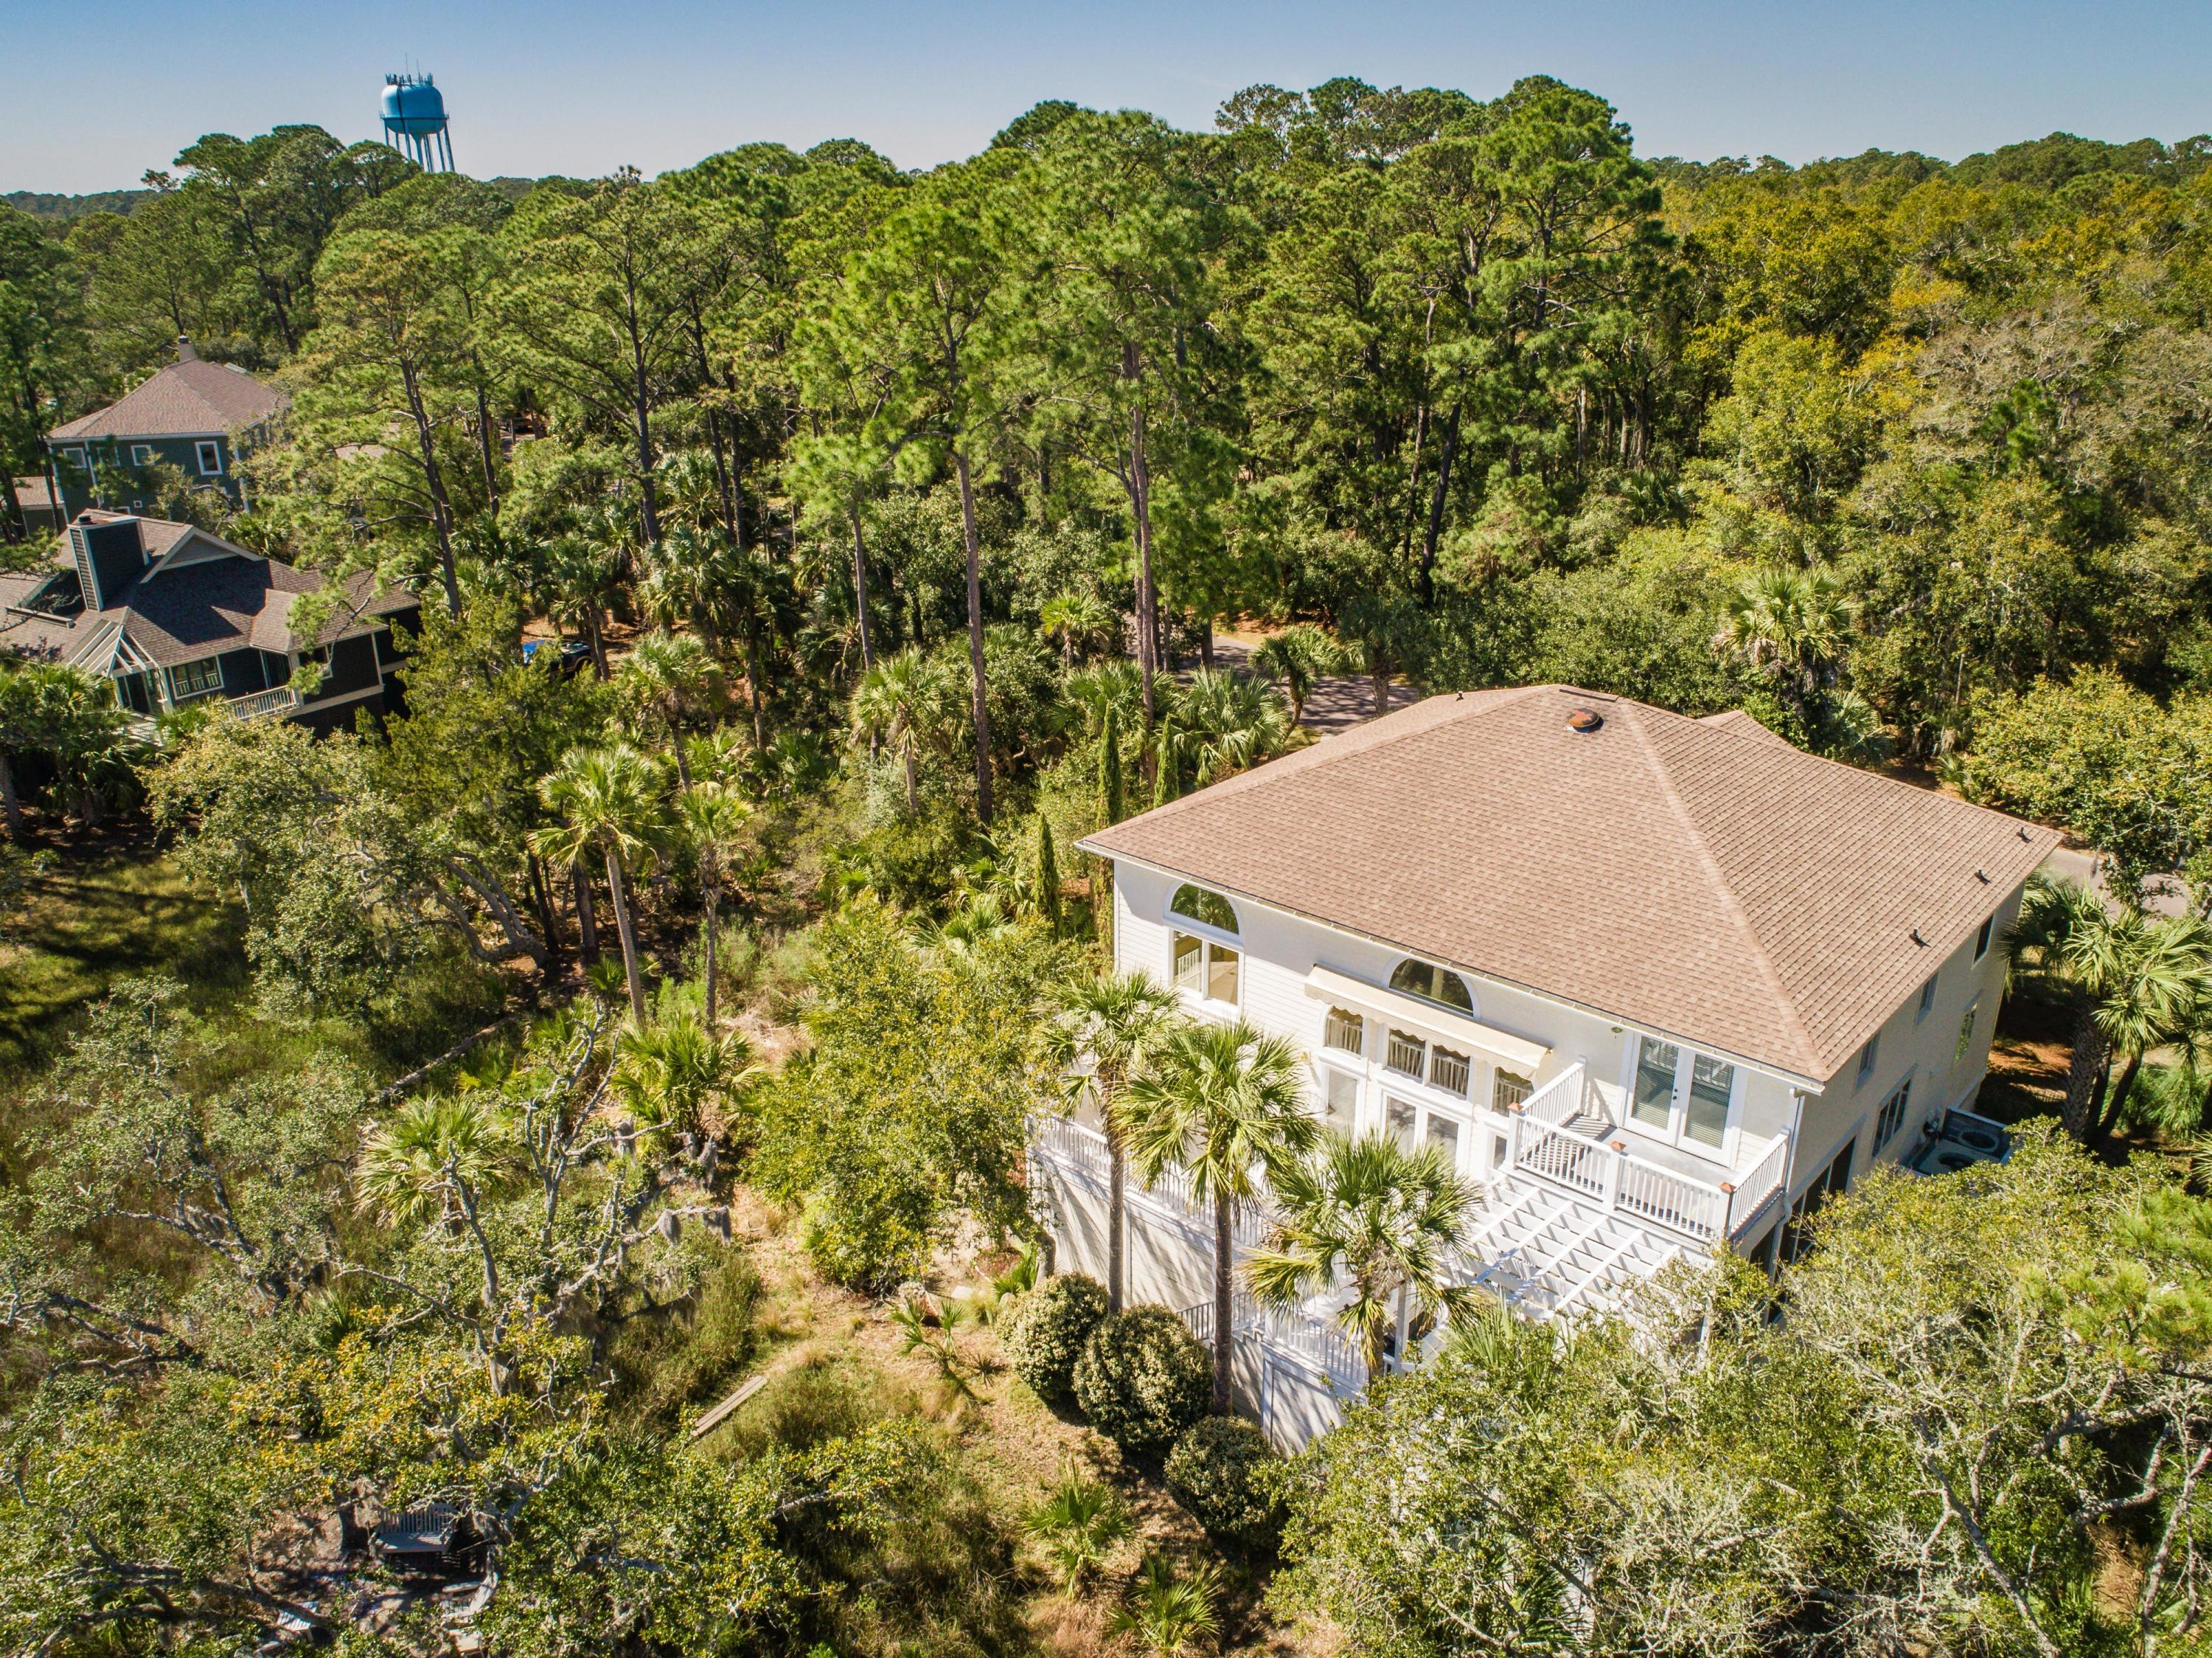 Seabrook Island Homes For Sale - 2957 Deer Point, Seabrook Island, SC - 57